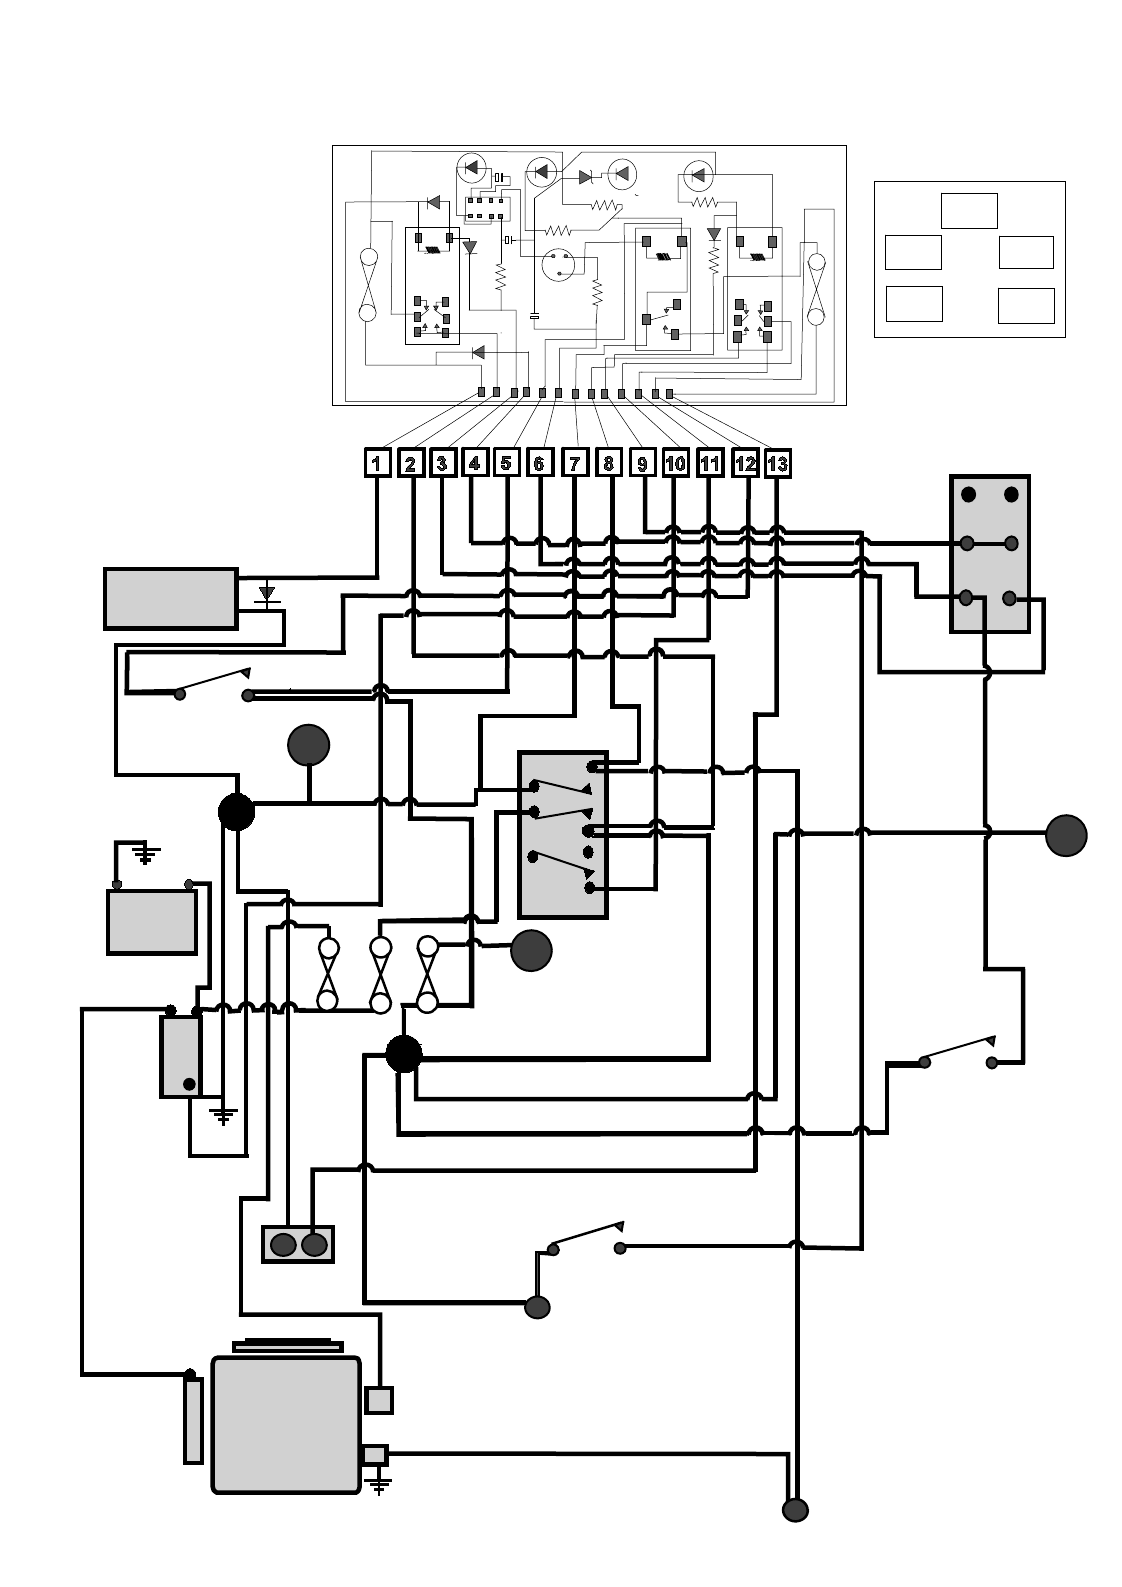 motor star delta wiring diagram pdf with Garden Tractor on Siemens Motor Starter Wiring Diagram likewise ment 20338 together with Contactor Wiring Diagram Single Phase furthermore Electric Motor Control In Industrial furthermore Century Ac Motor Wiring.